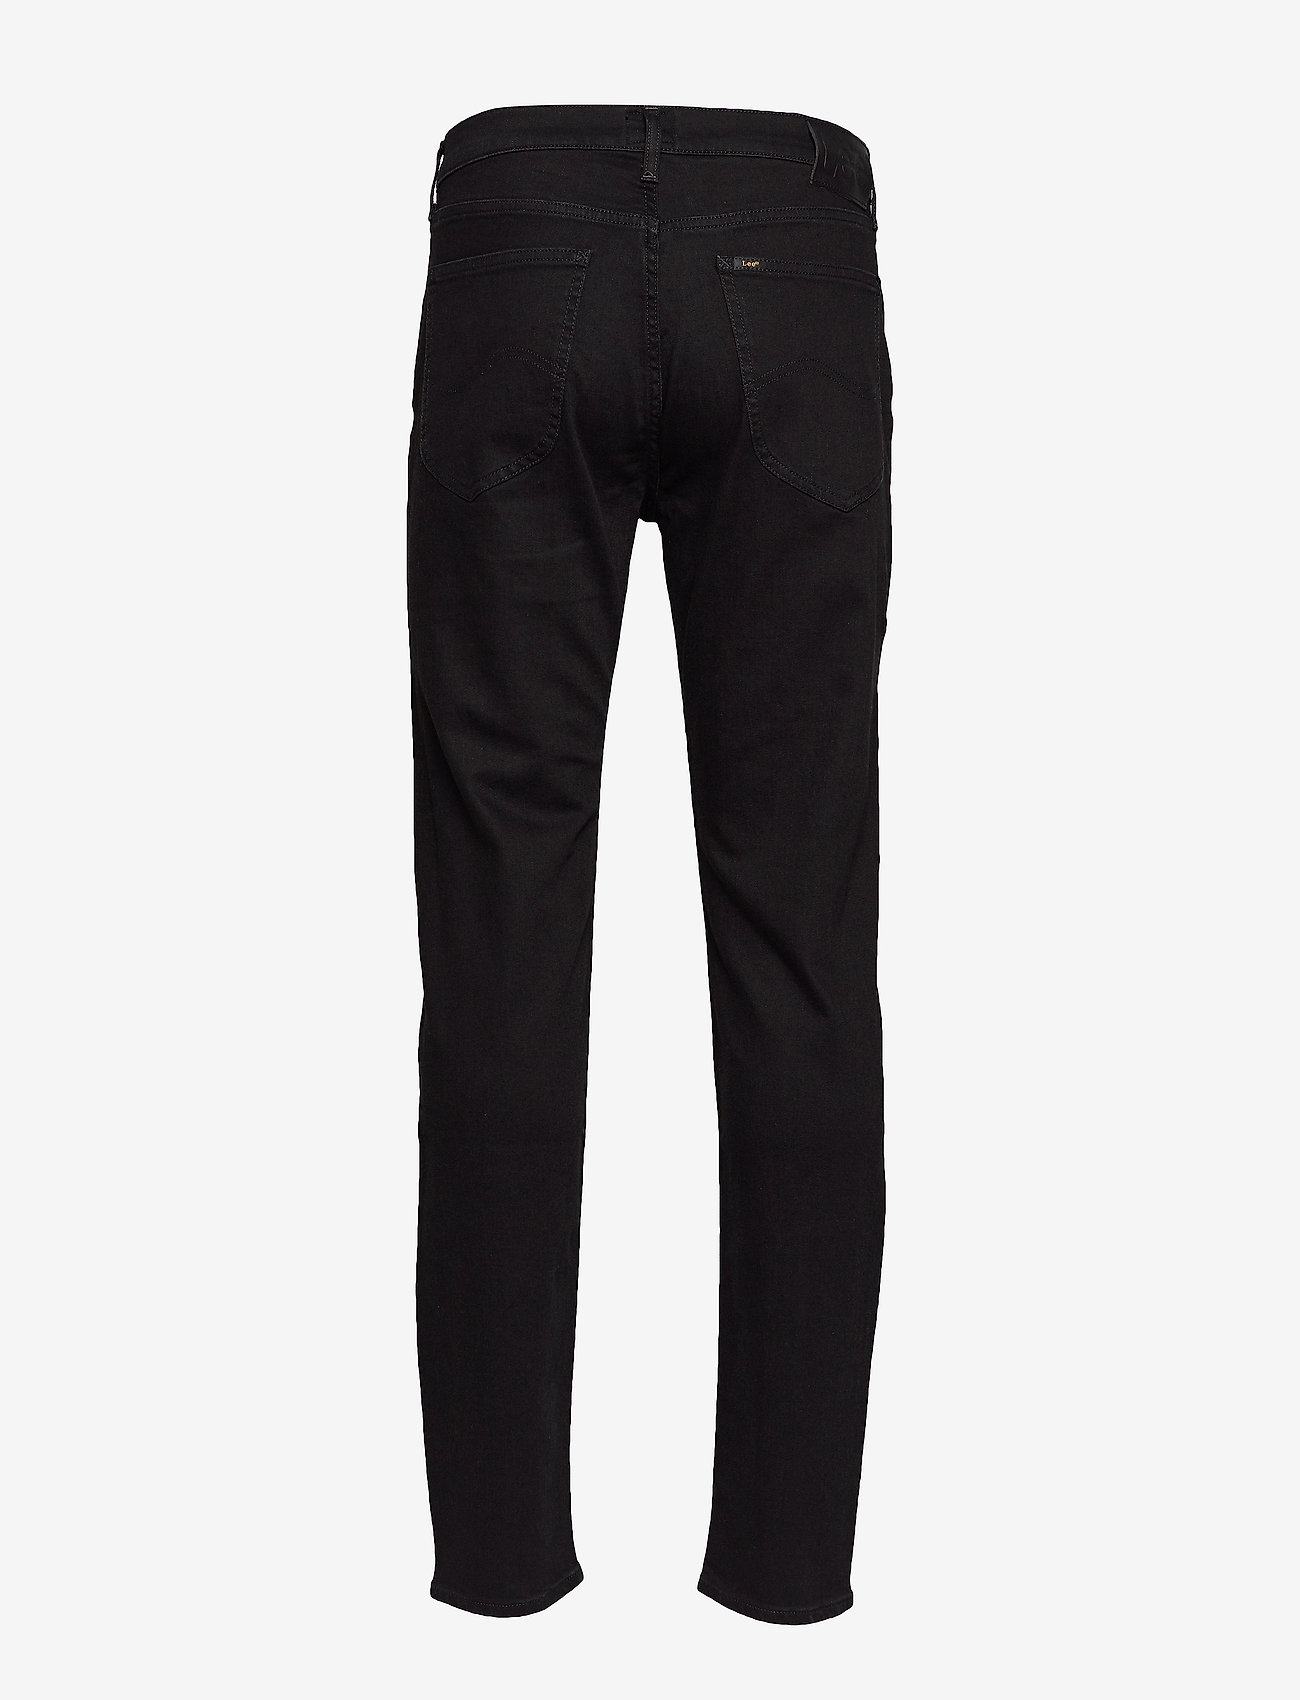 Lee Jeans - AUSTIN - regular jeans - clean black - 1